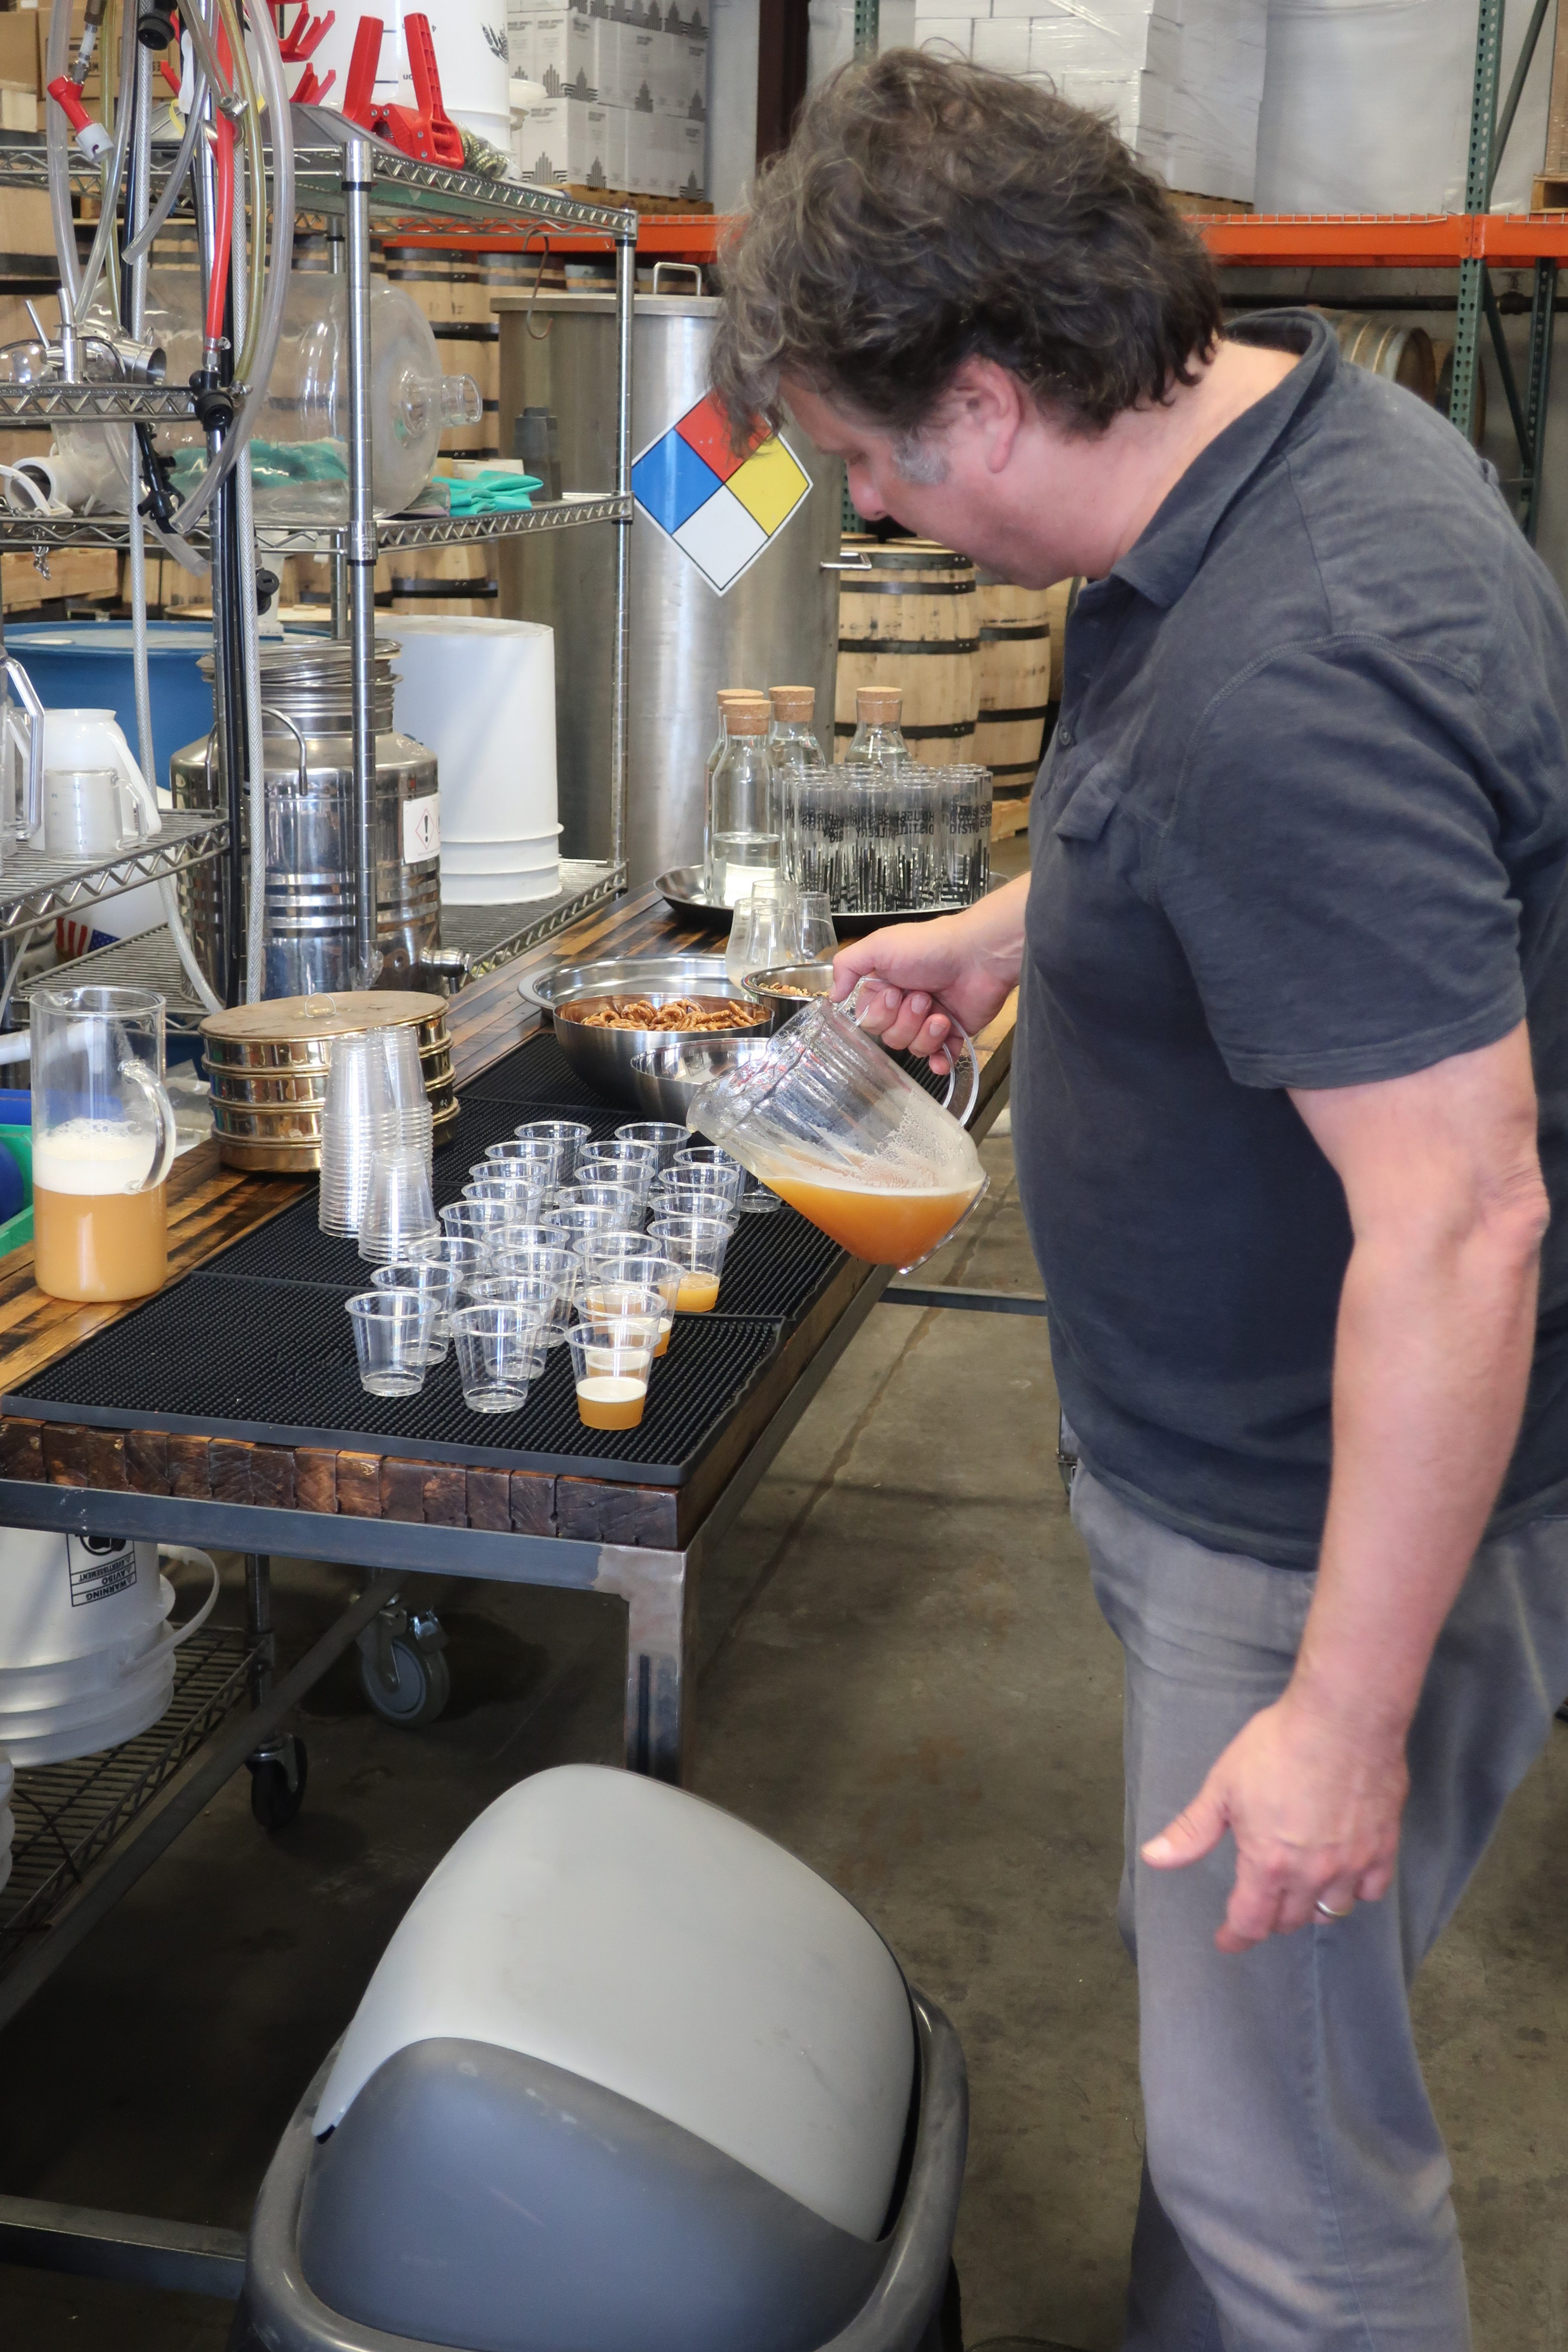 Christian Krogstad pouring freshly brewed wort prior to the distillation process in making Westward Whiskey.